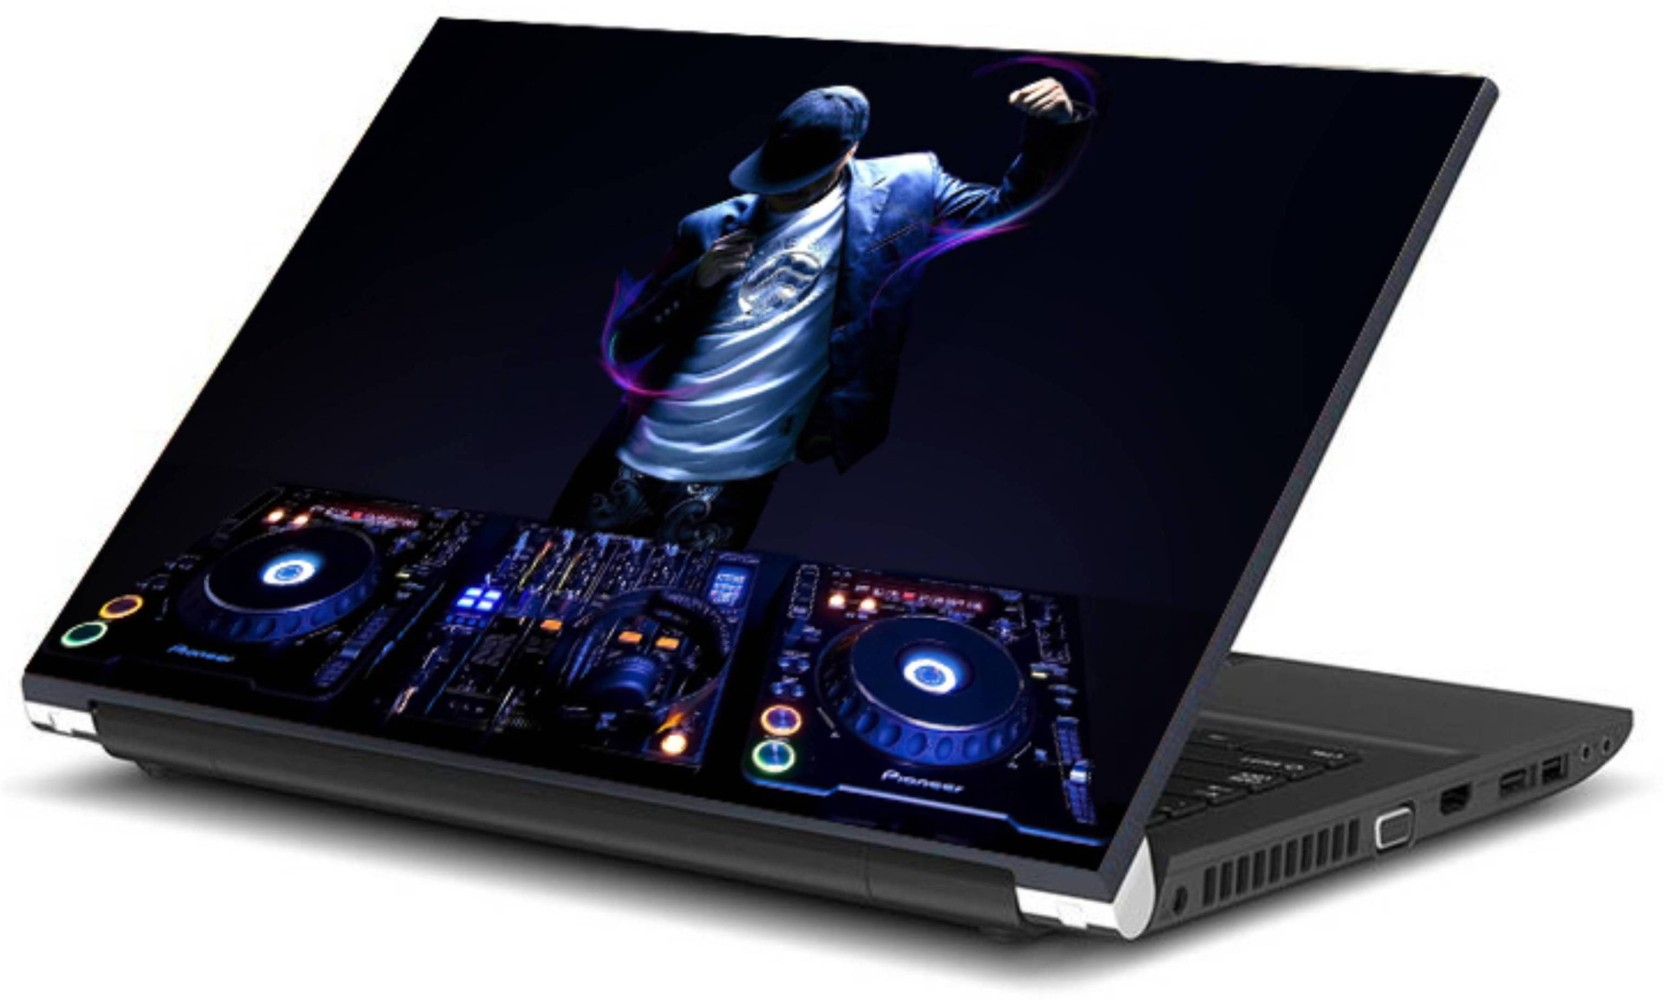 Print shapes dj music vinyl laptop decal 15 6 add to cart